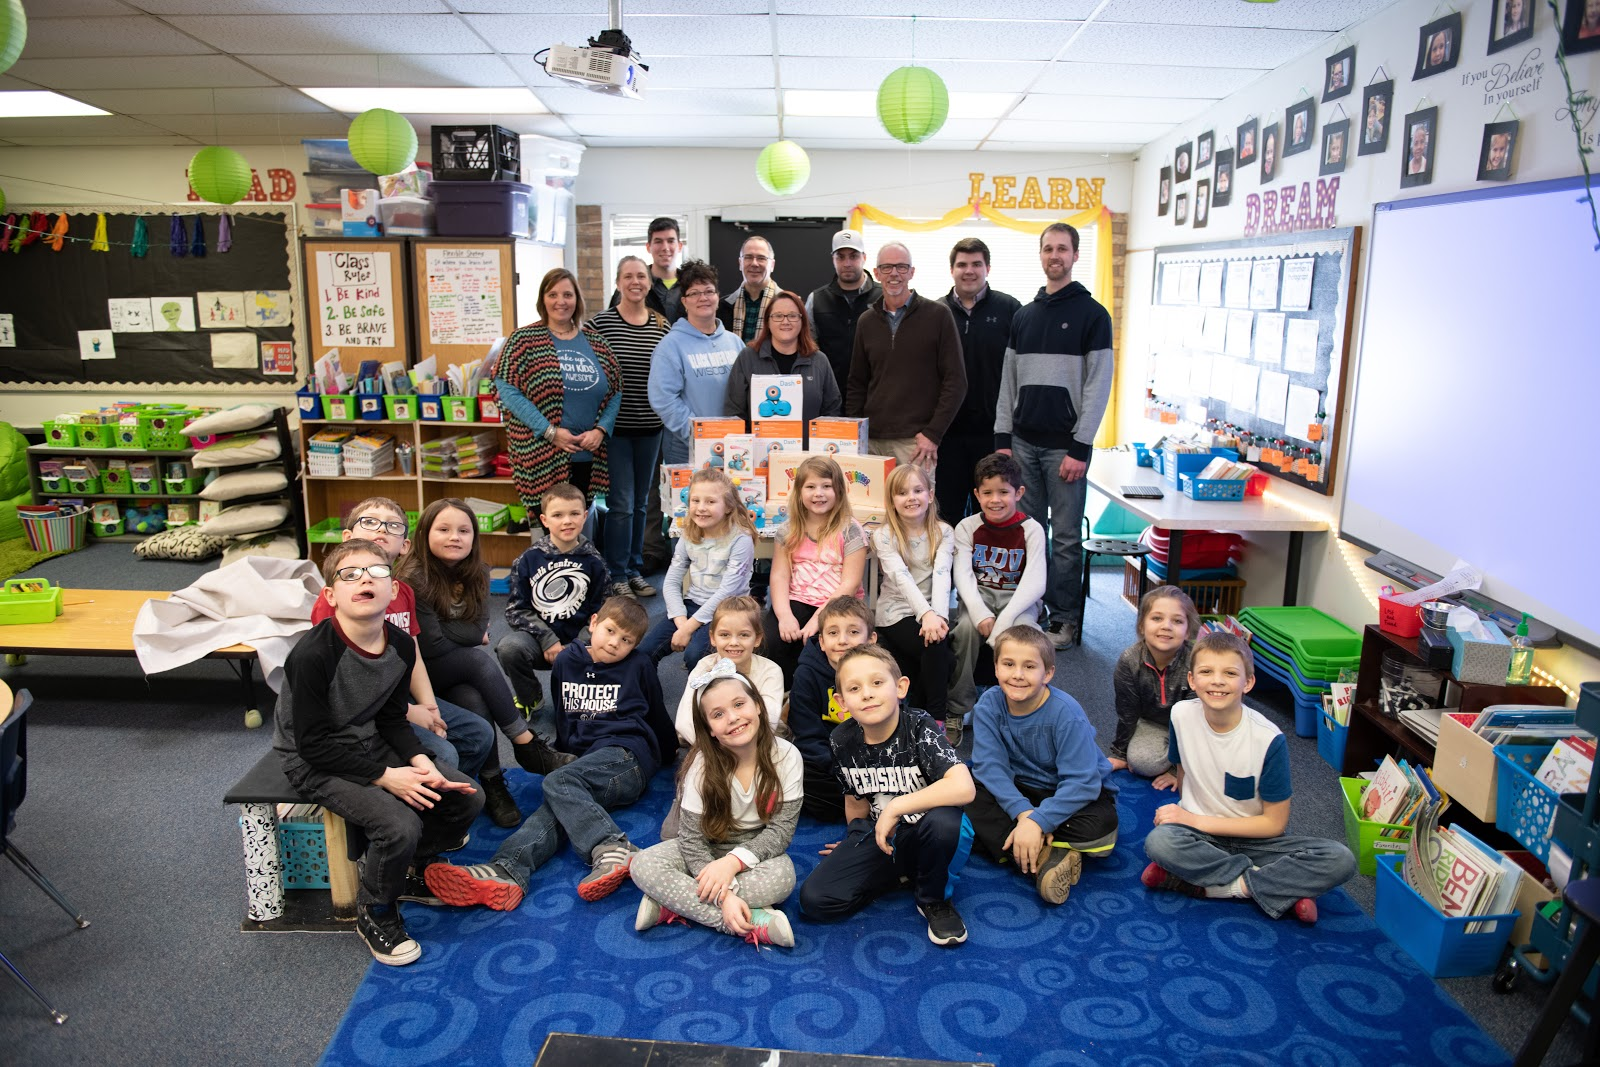 Columbia Vehicle Group team members donate STEM robots to elementary school classroom